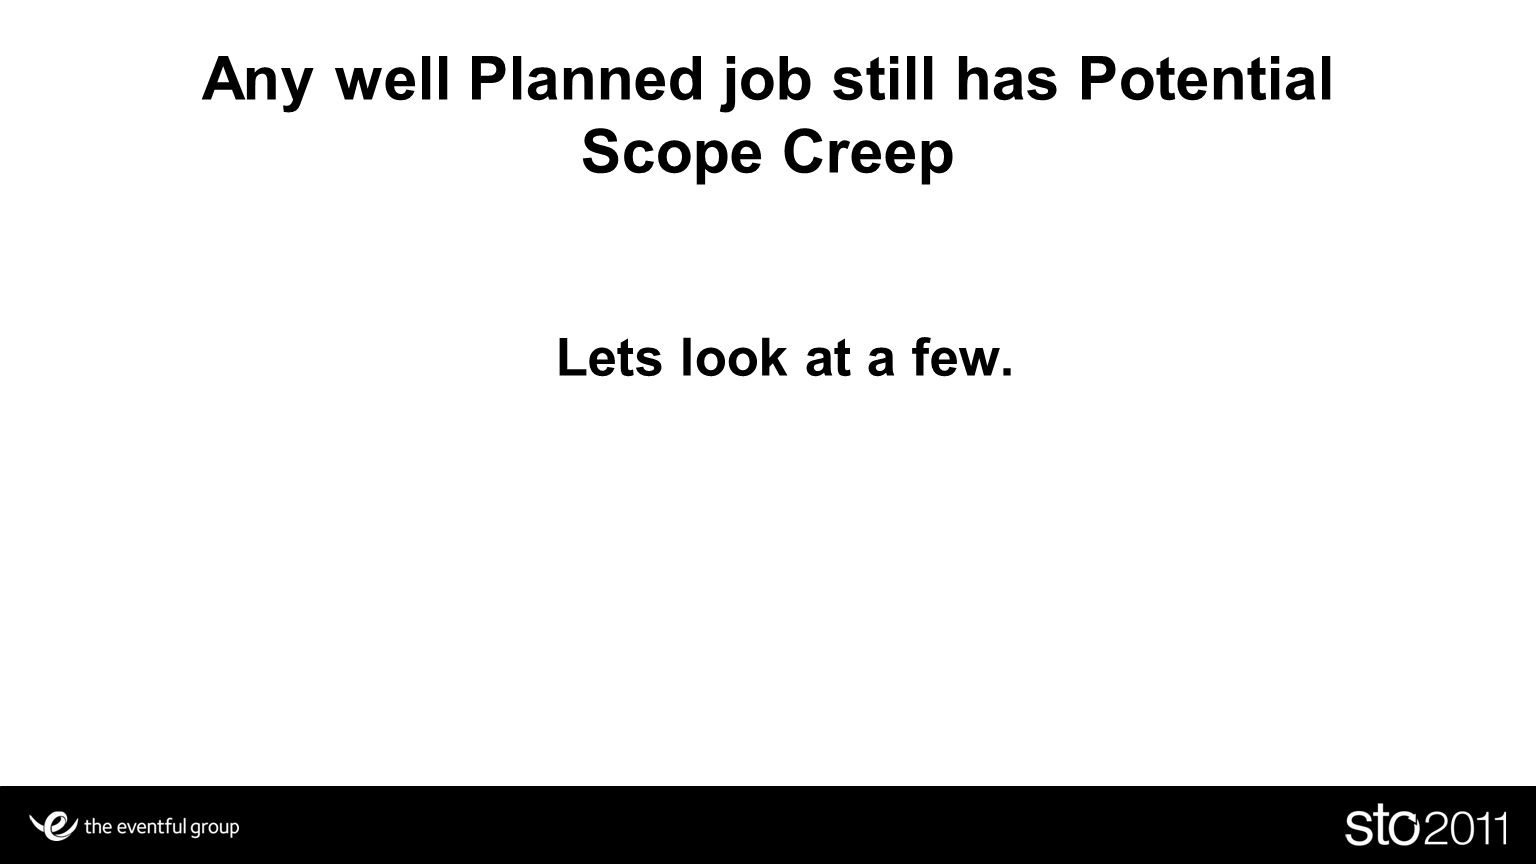 Any well Planned job still has Potential Scope Creep